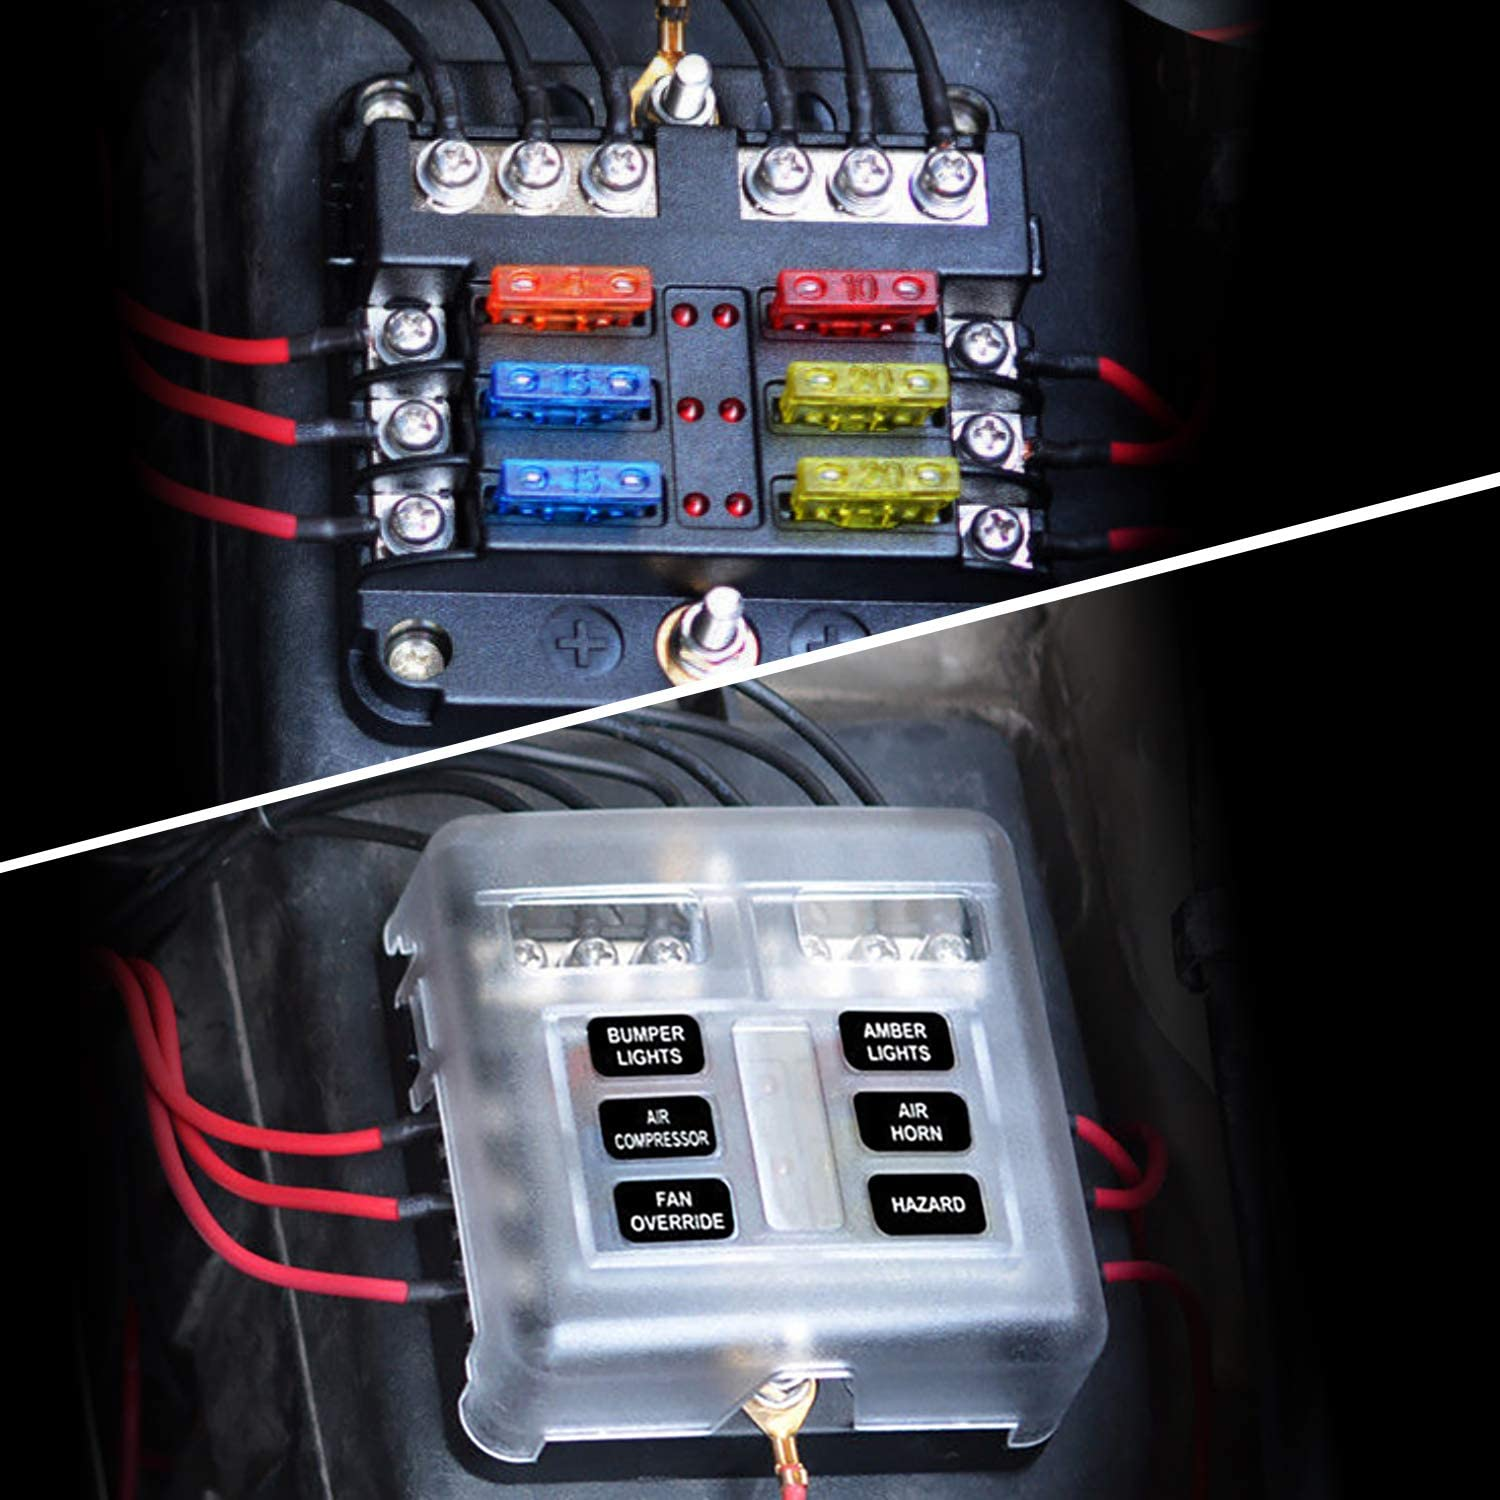 Nilight 6 Way Blade Fuse Block 6 Circuits with Negative Bus Fuse Box Holder with LED Indicator ATO//ATC Fuse Panel Waterproof Cover for 12V Automotive Cars Marine Boats,RVs,Trailers,2 Years Warranty